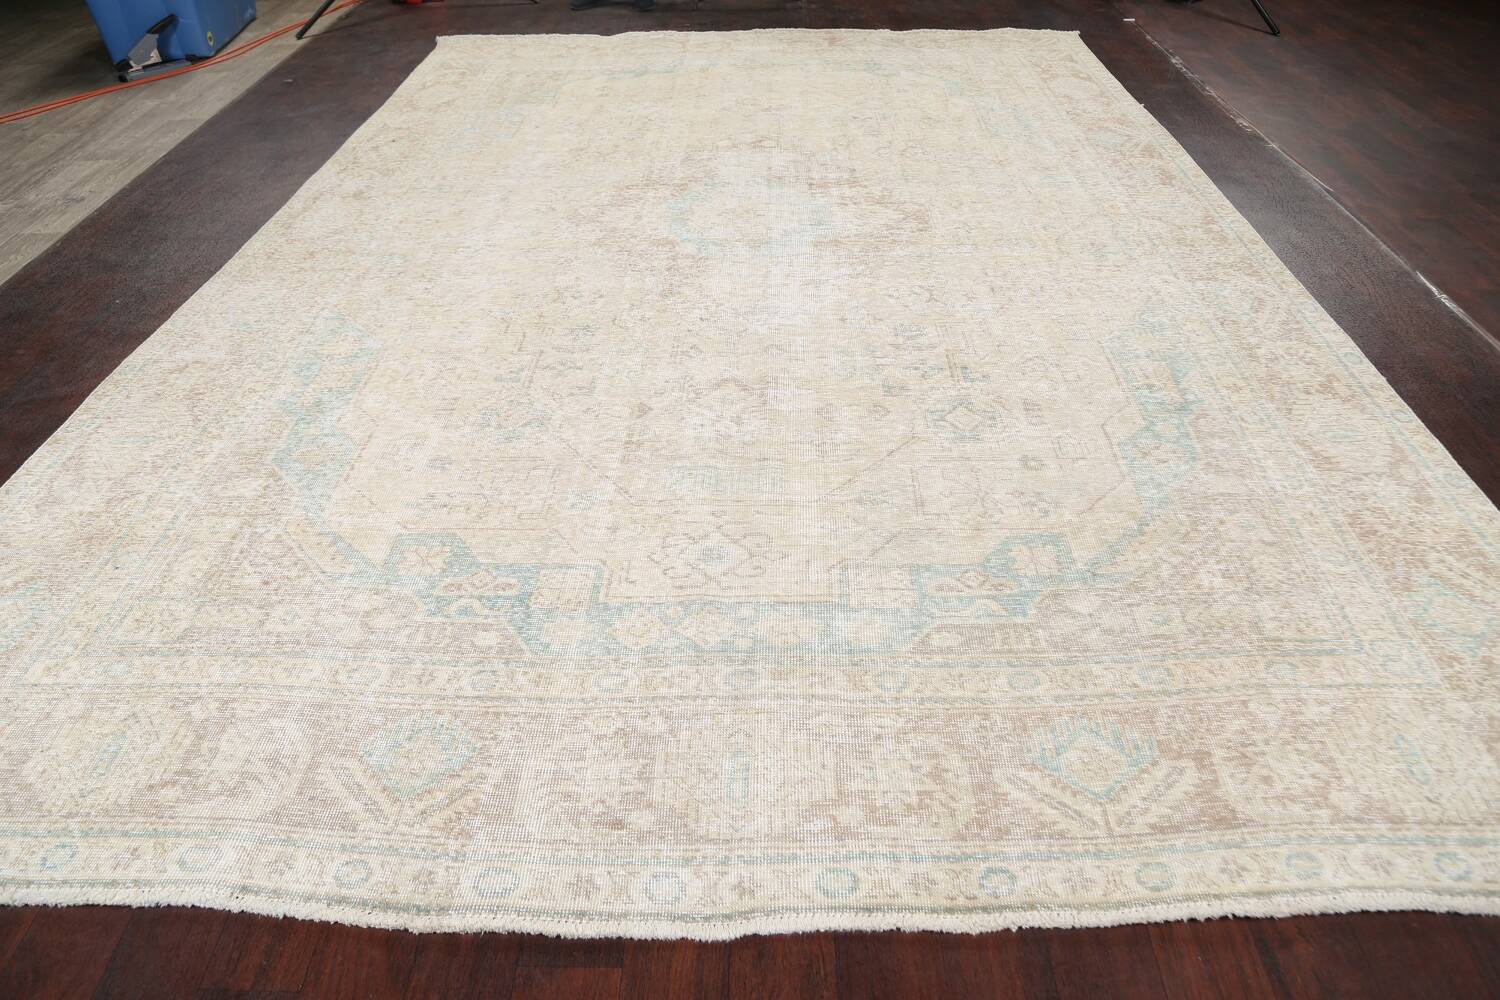 Antique Muted Distressed Tabriz Persian Area Rug 9x13 image 14